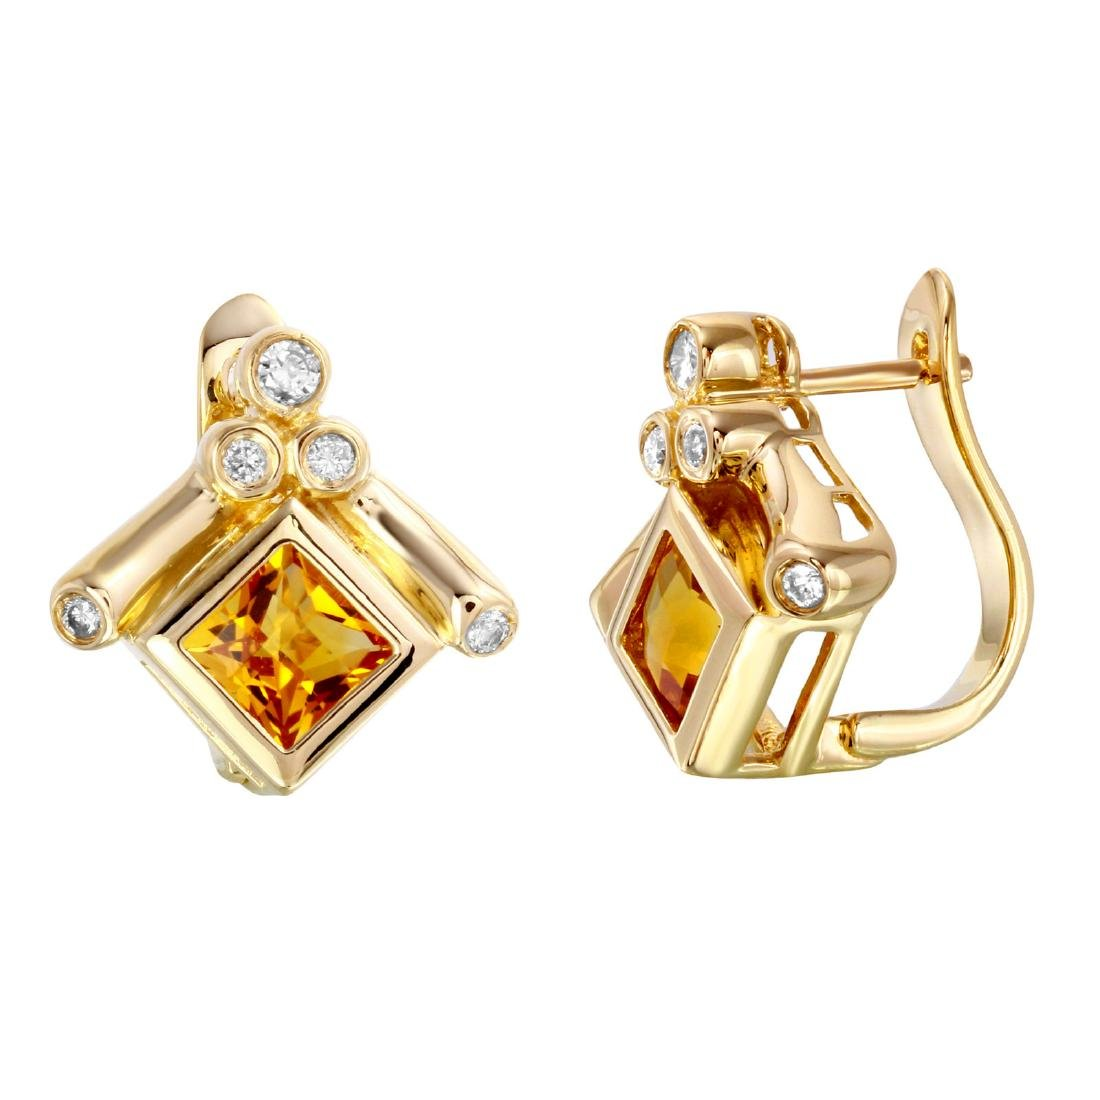 14KT Yellow Gold Citrine & Diamond Earrings - 2